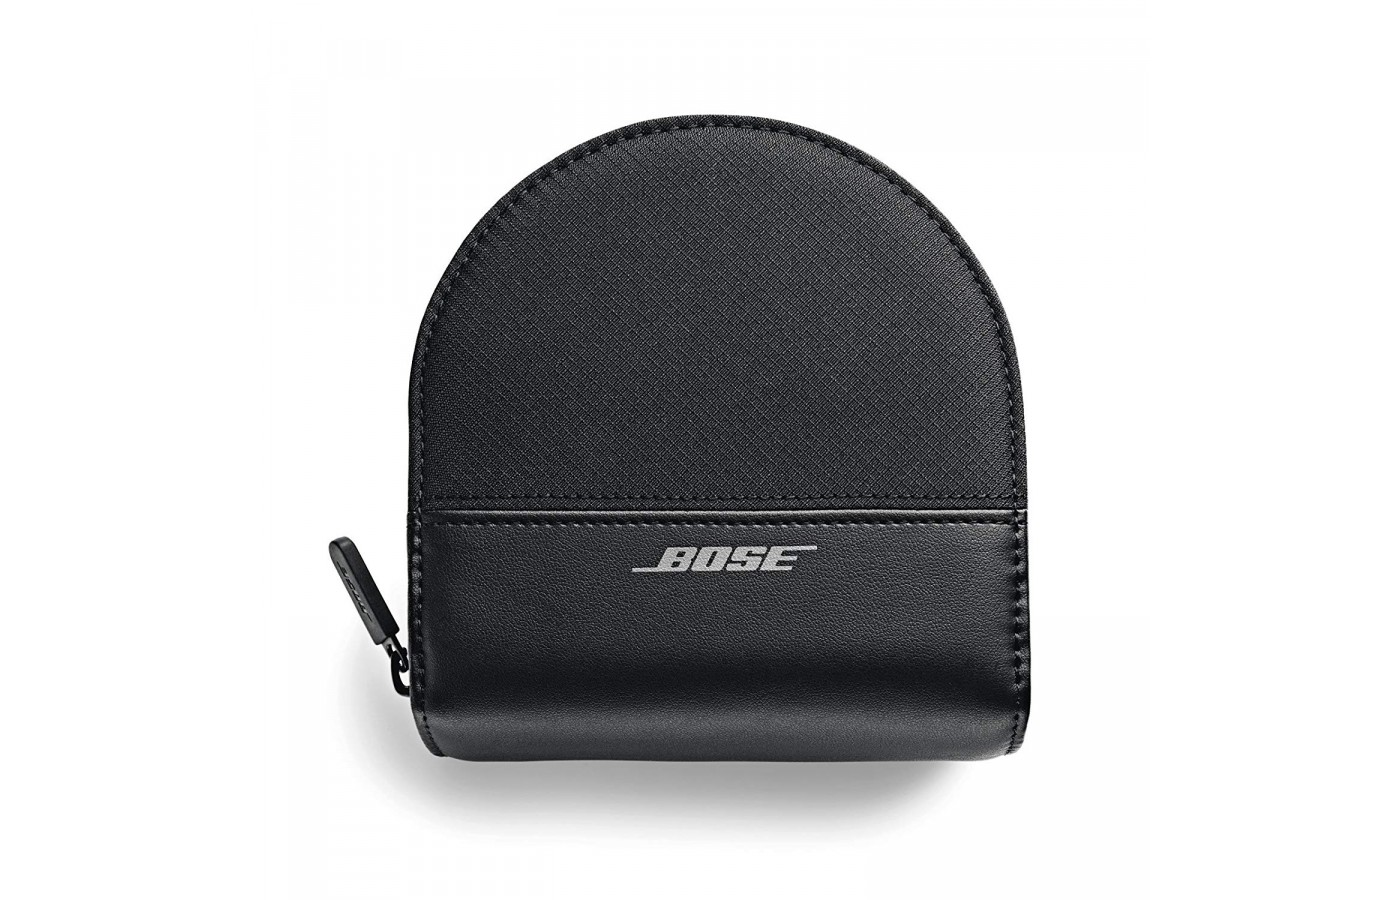 The comfortable headphones can be folded and placed into a small carrying pouch that makes the perfect for travel.